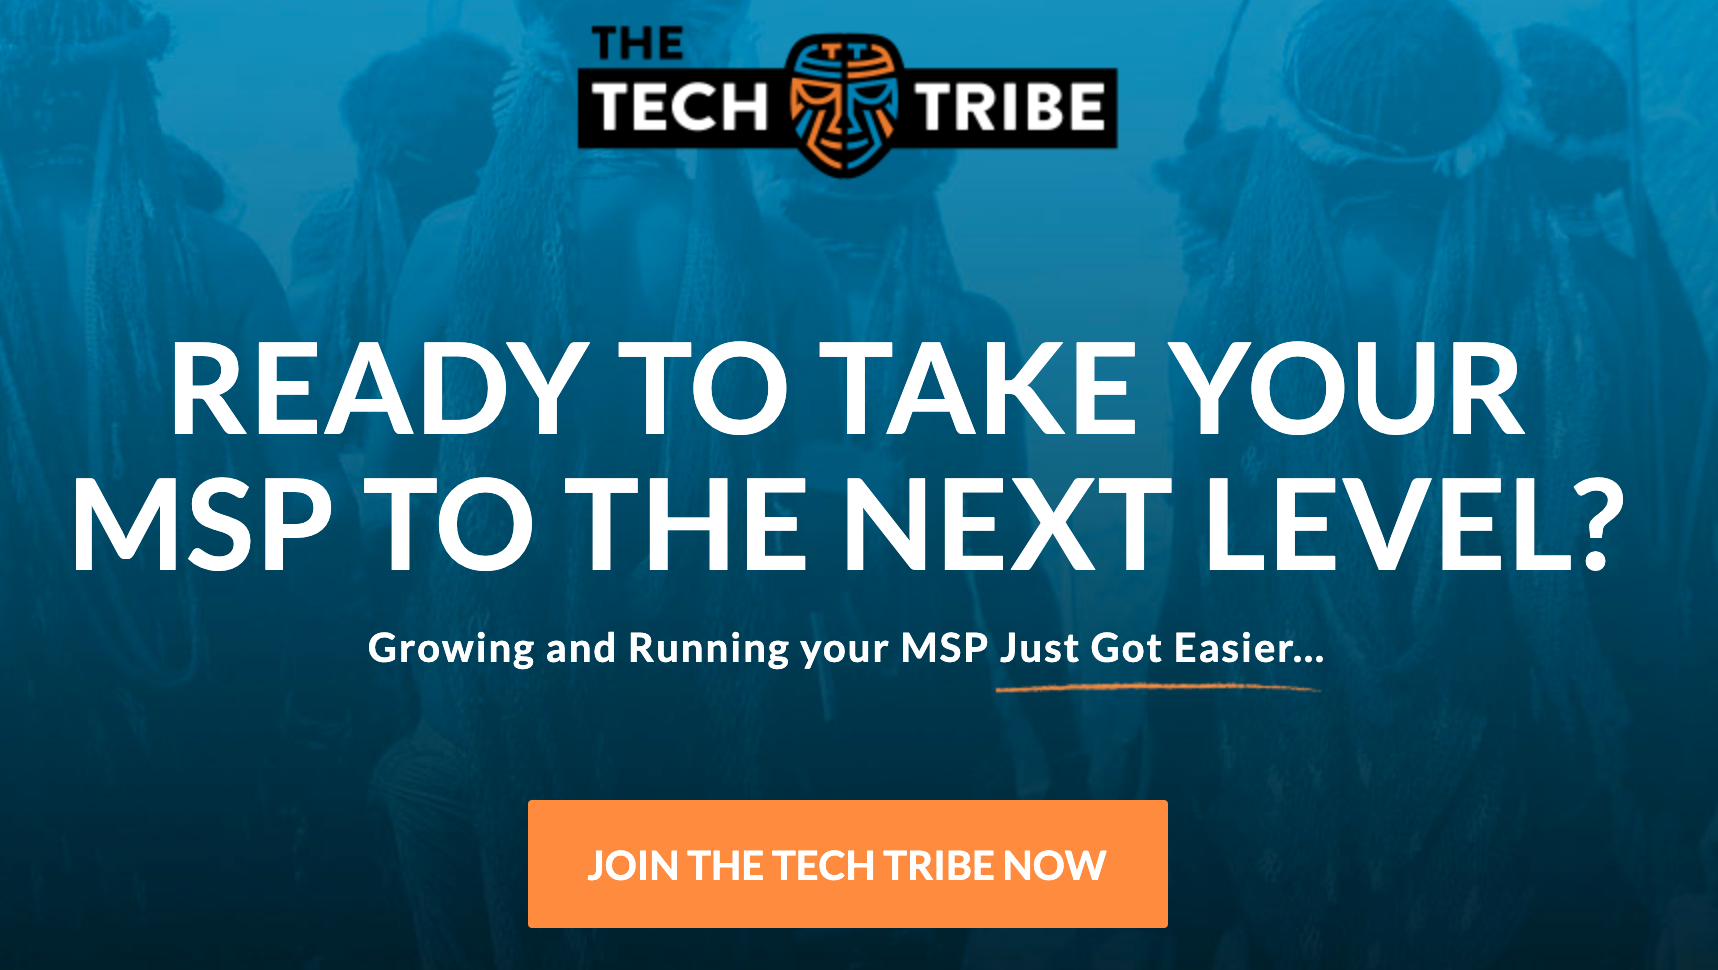 The Tech Tribe - Growing and running your MSP